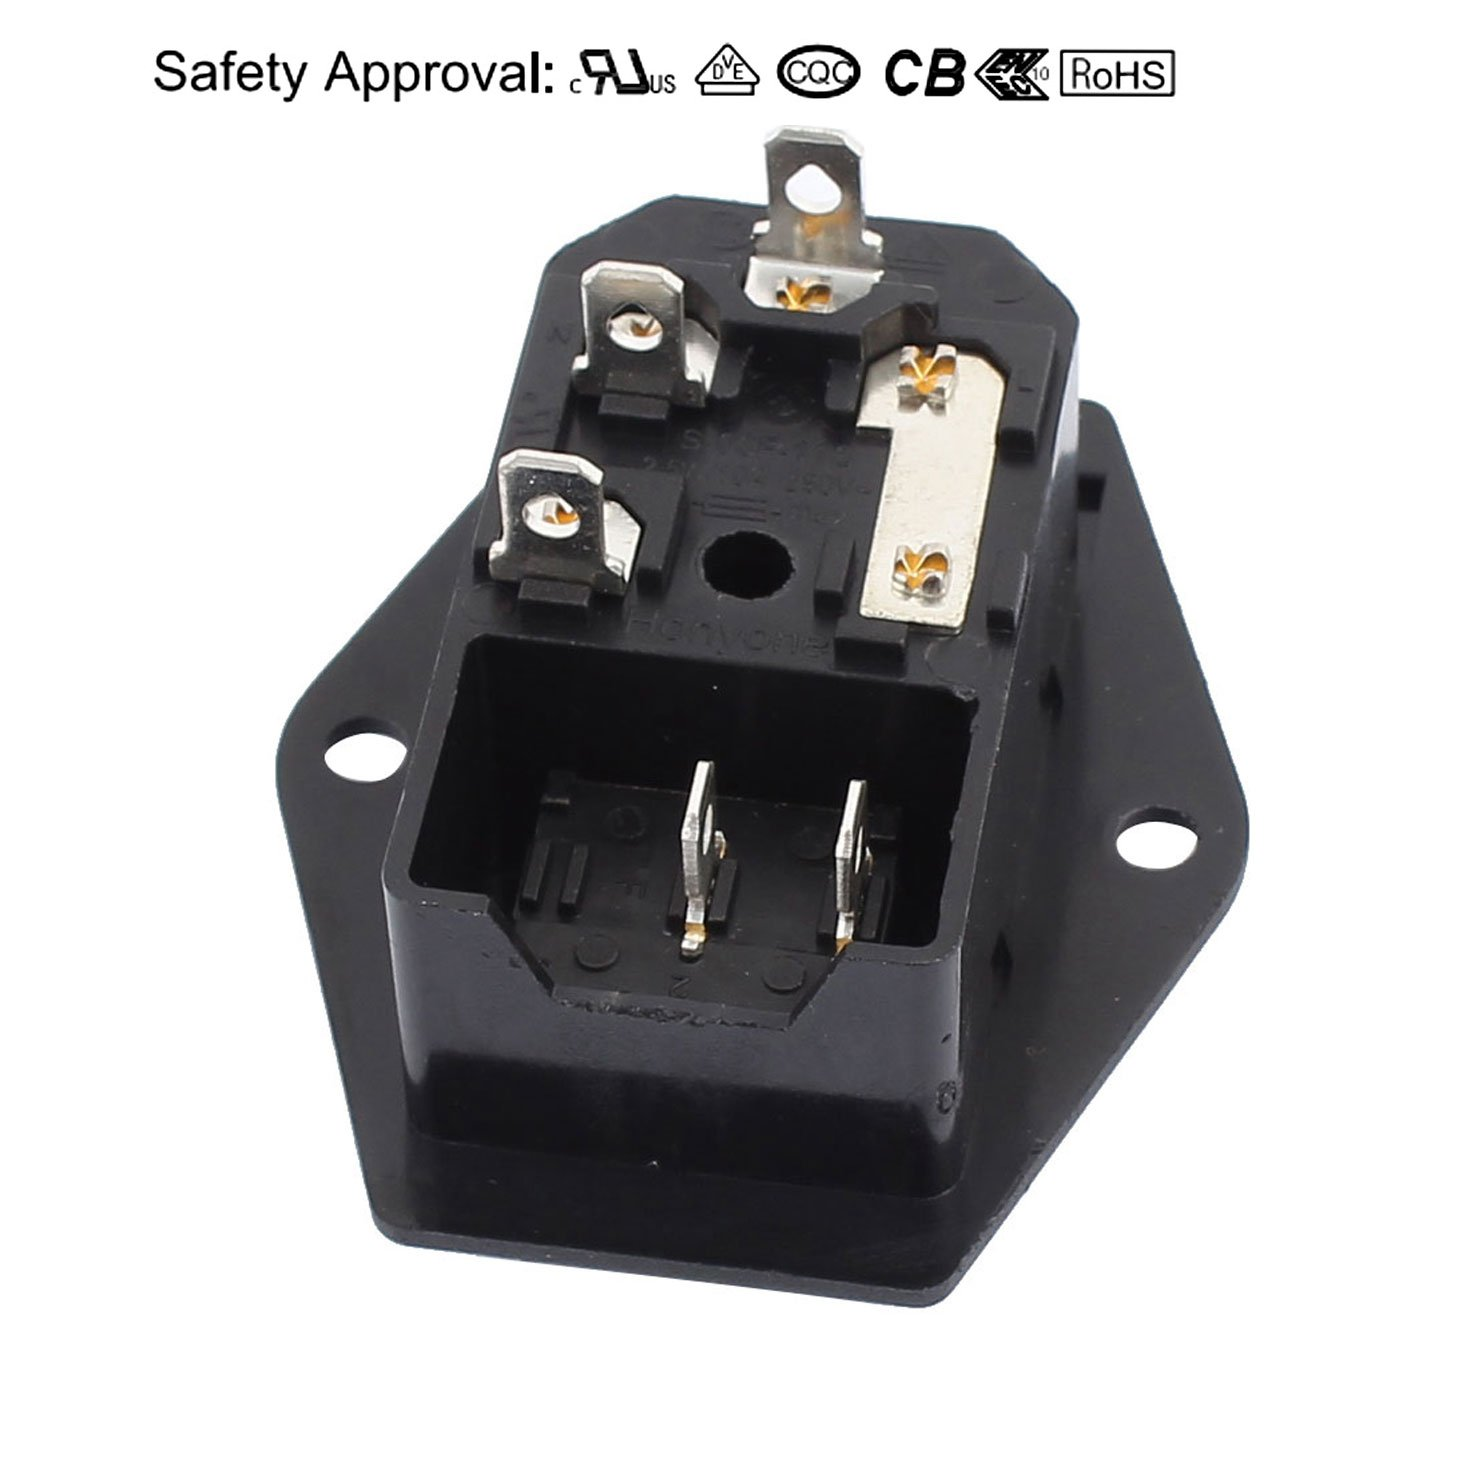 Uxcell 10a 250vac Rocker Switch 3 Terminals Iec320 C14 Inlet Male Iec Power Cord Wiring Free Download Diagram Schematic Connector Light Sockets